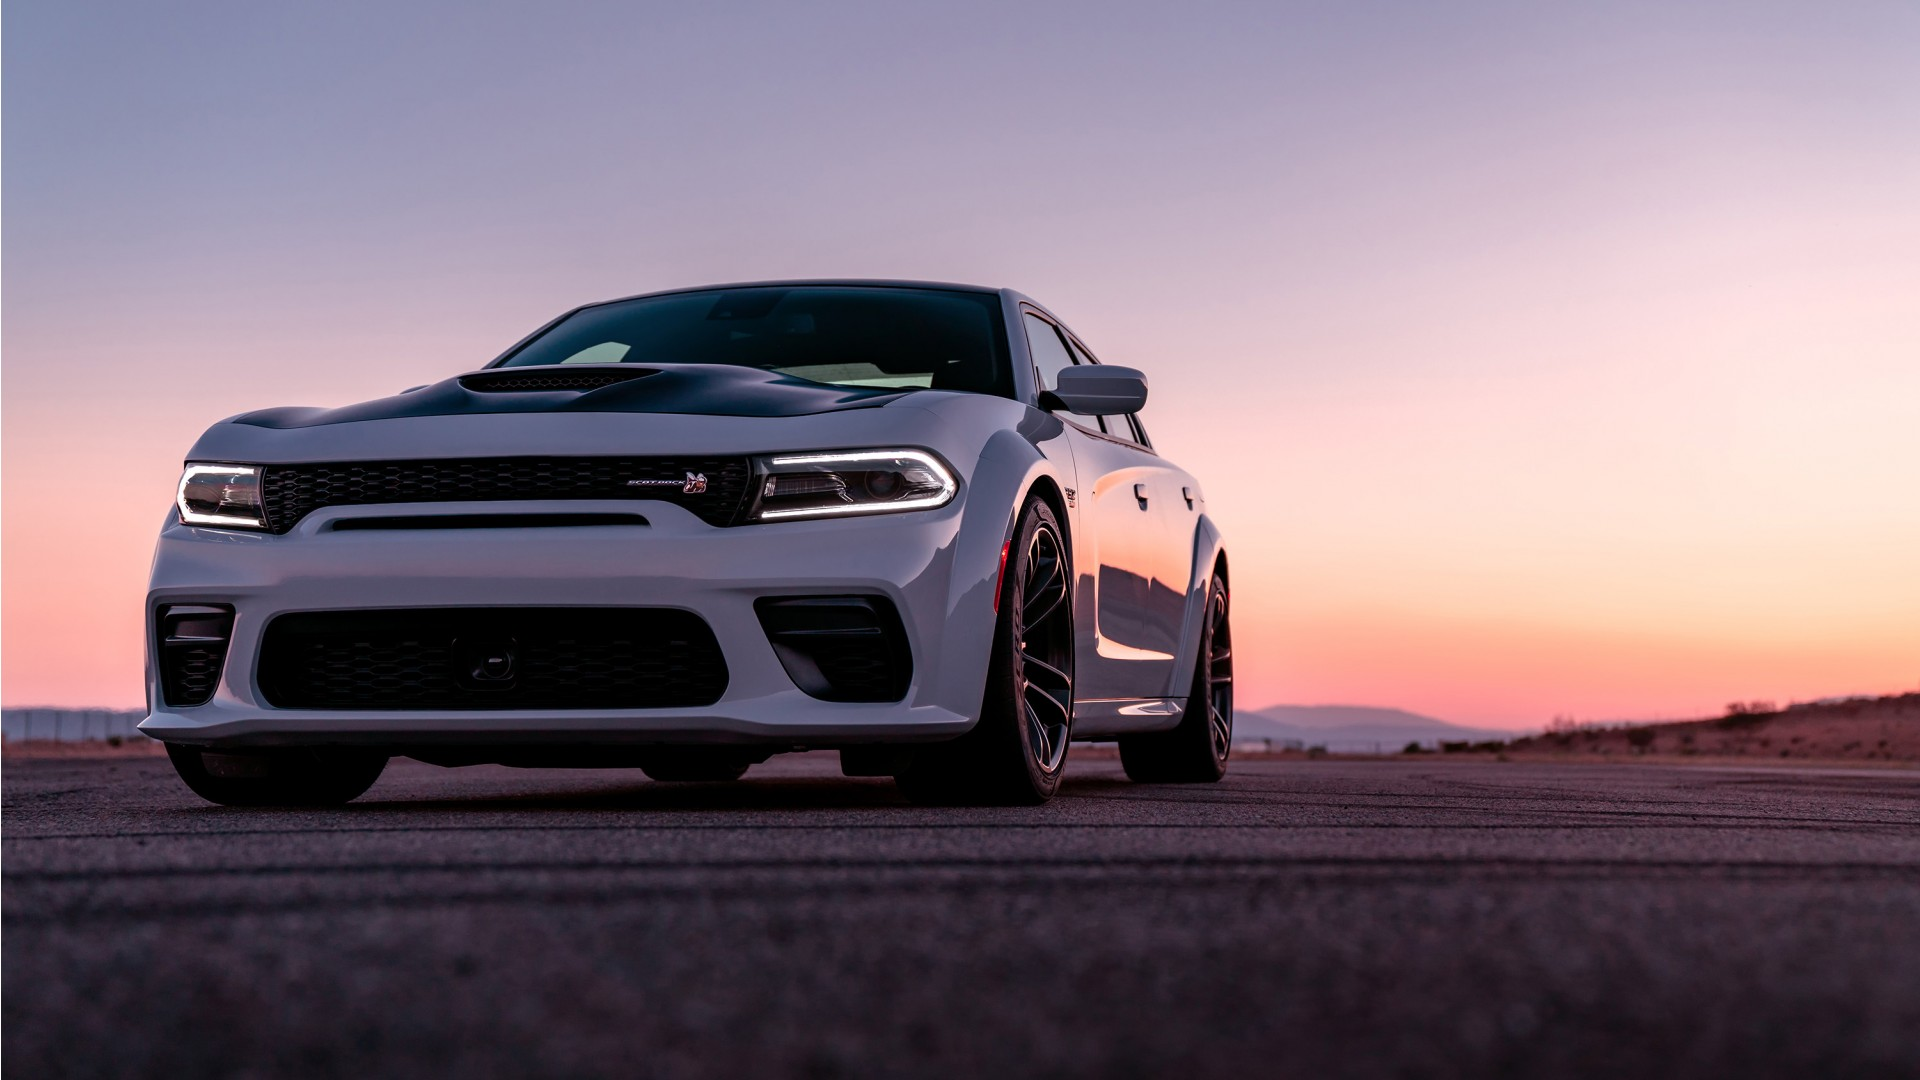 Benz Car Wallpapers For Desktop 2020 Dodge Charger Scat Pack Widebody Wallpaper Hd Car